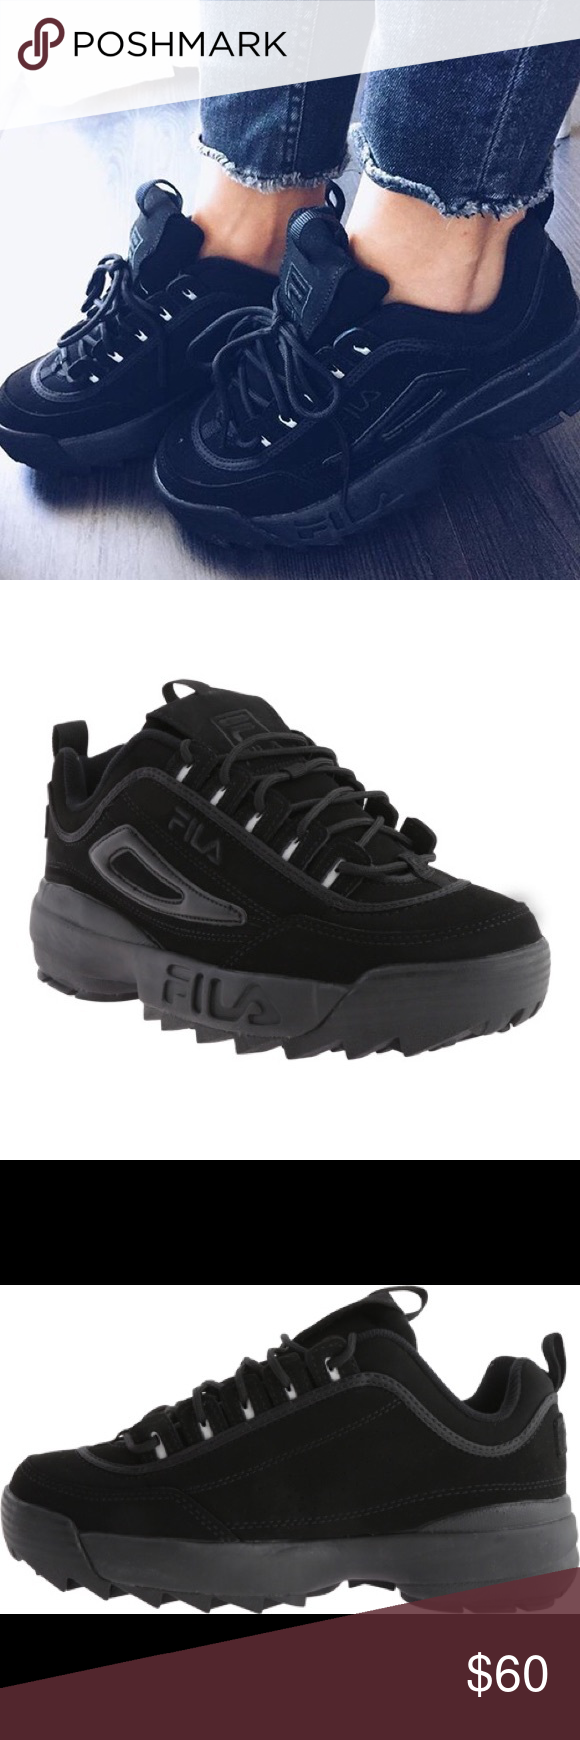 744c2587a57b Fila Disruptor II Triple Black Kids 6.5 WO 8.5 Get in style with these  brand new